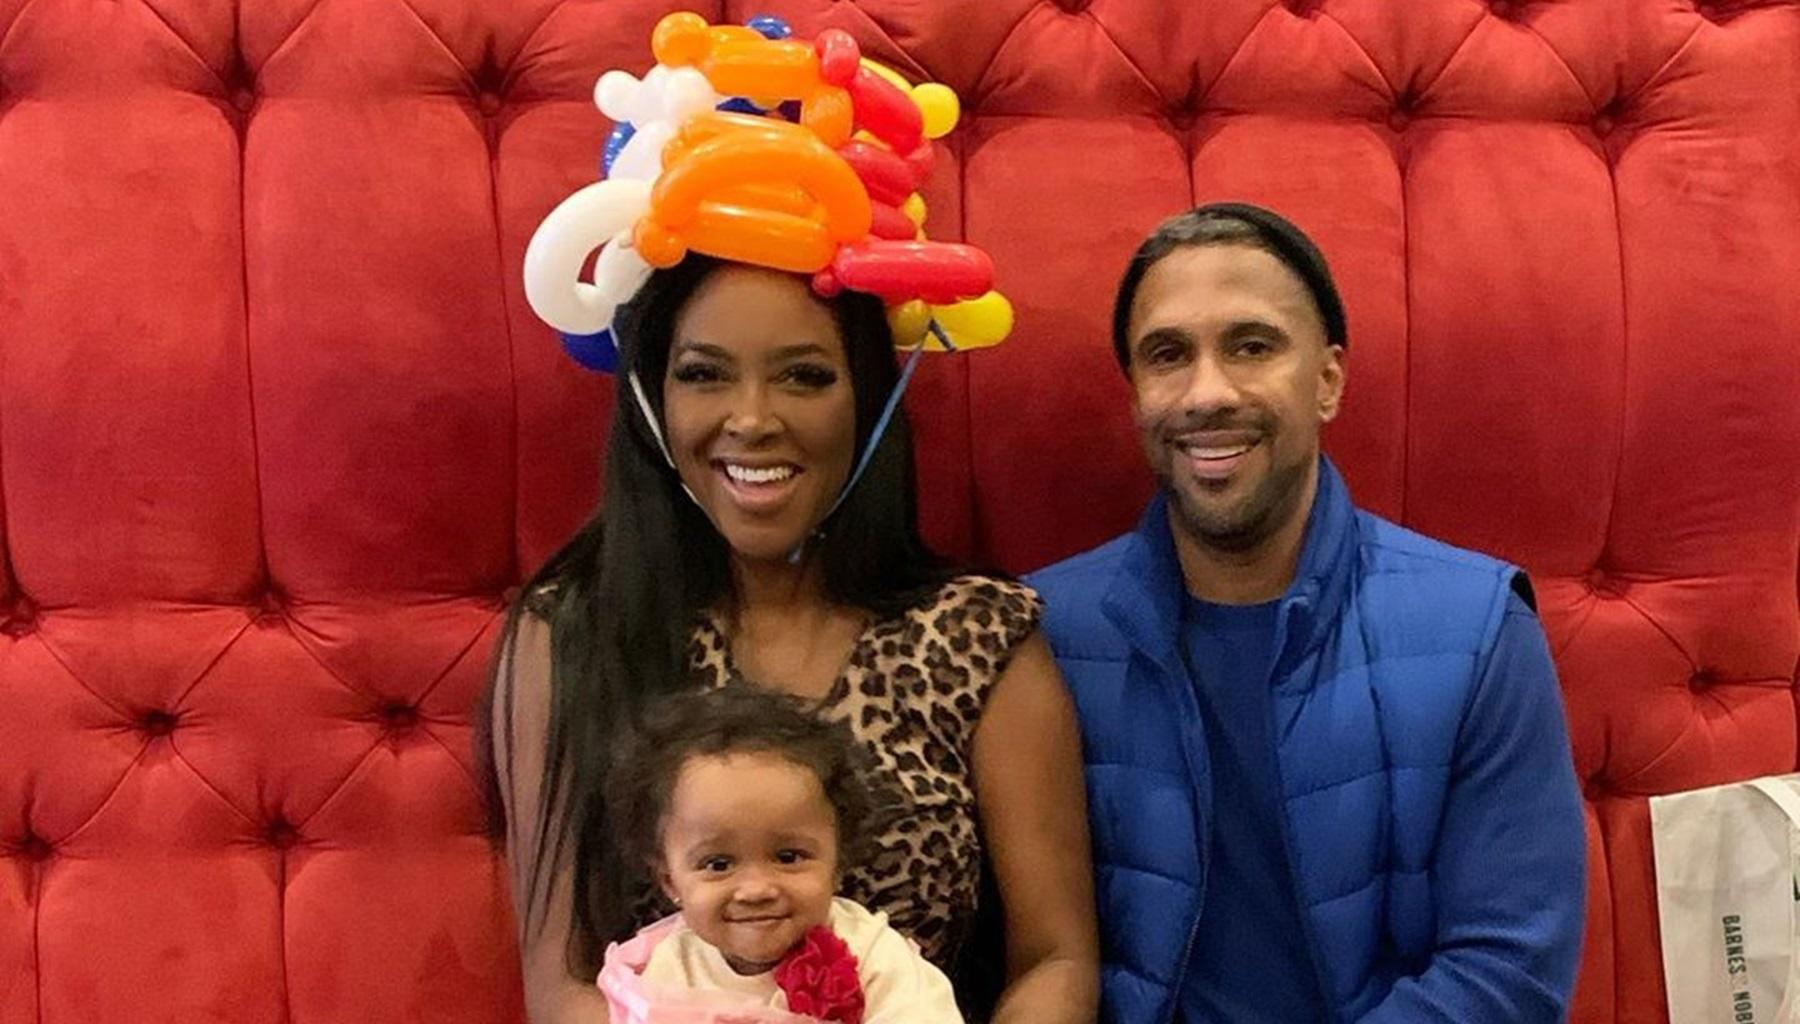 Kenya Moore Explains Why She Dislikes Nene Leakes And Gives The Name Of The 'Real Head B*tch In Charge' On 'The Real Housewives Of Atlanta'